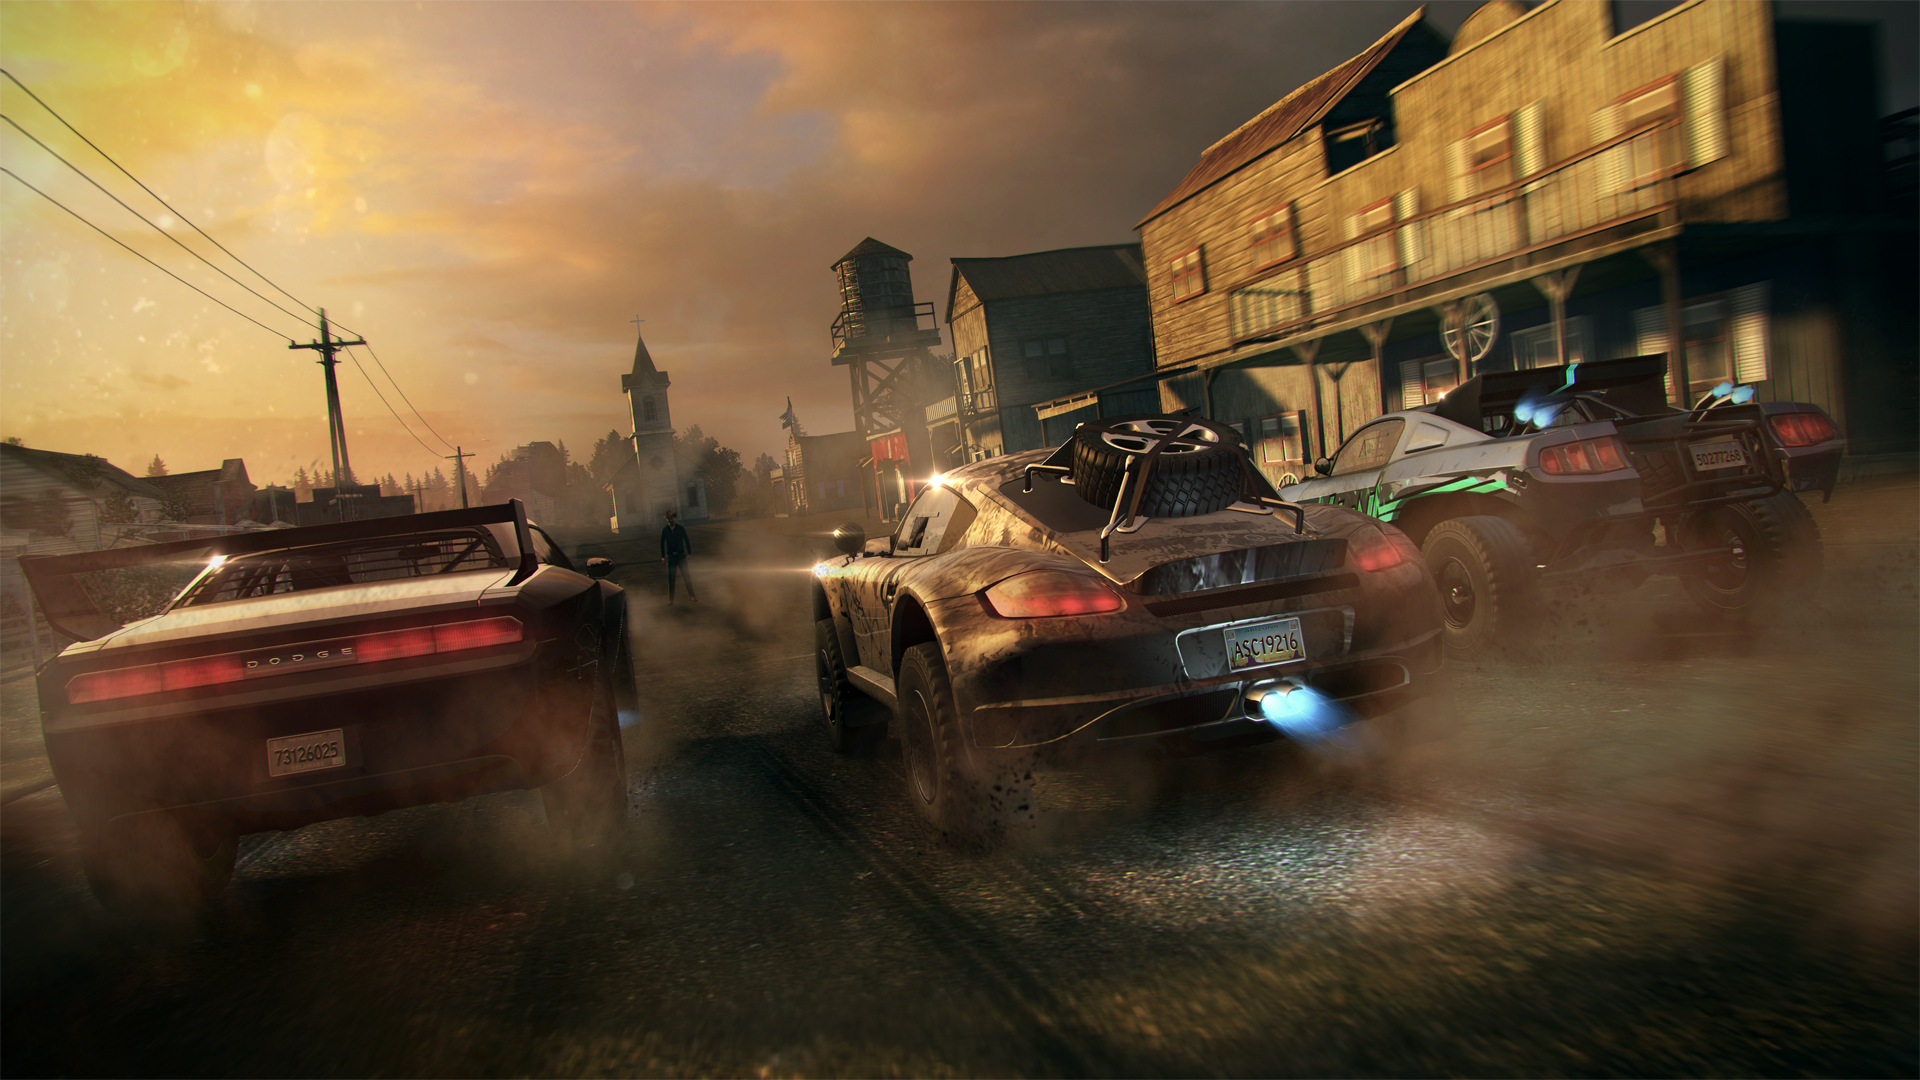 New Content Out Now For Ubisoft's The Crew